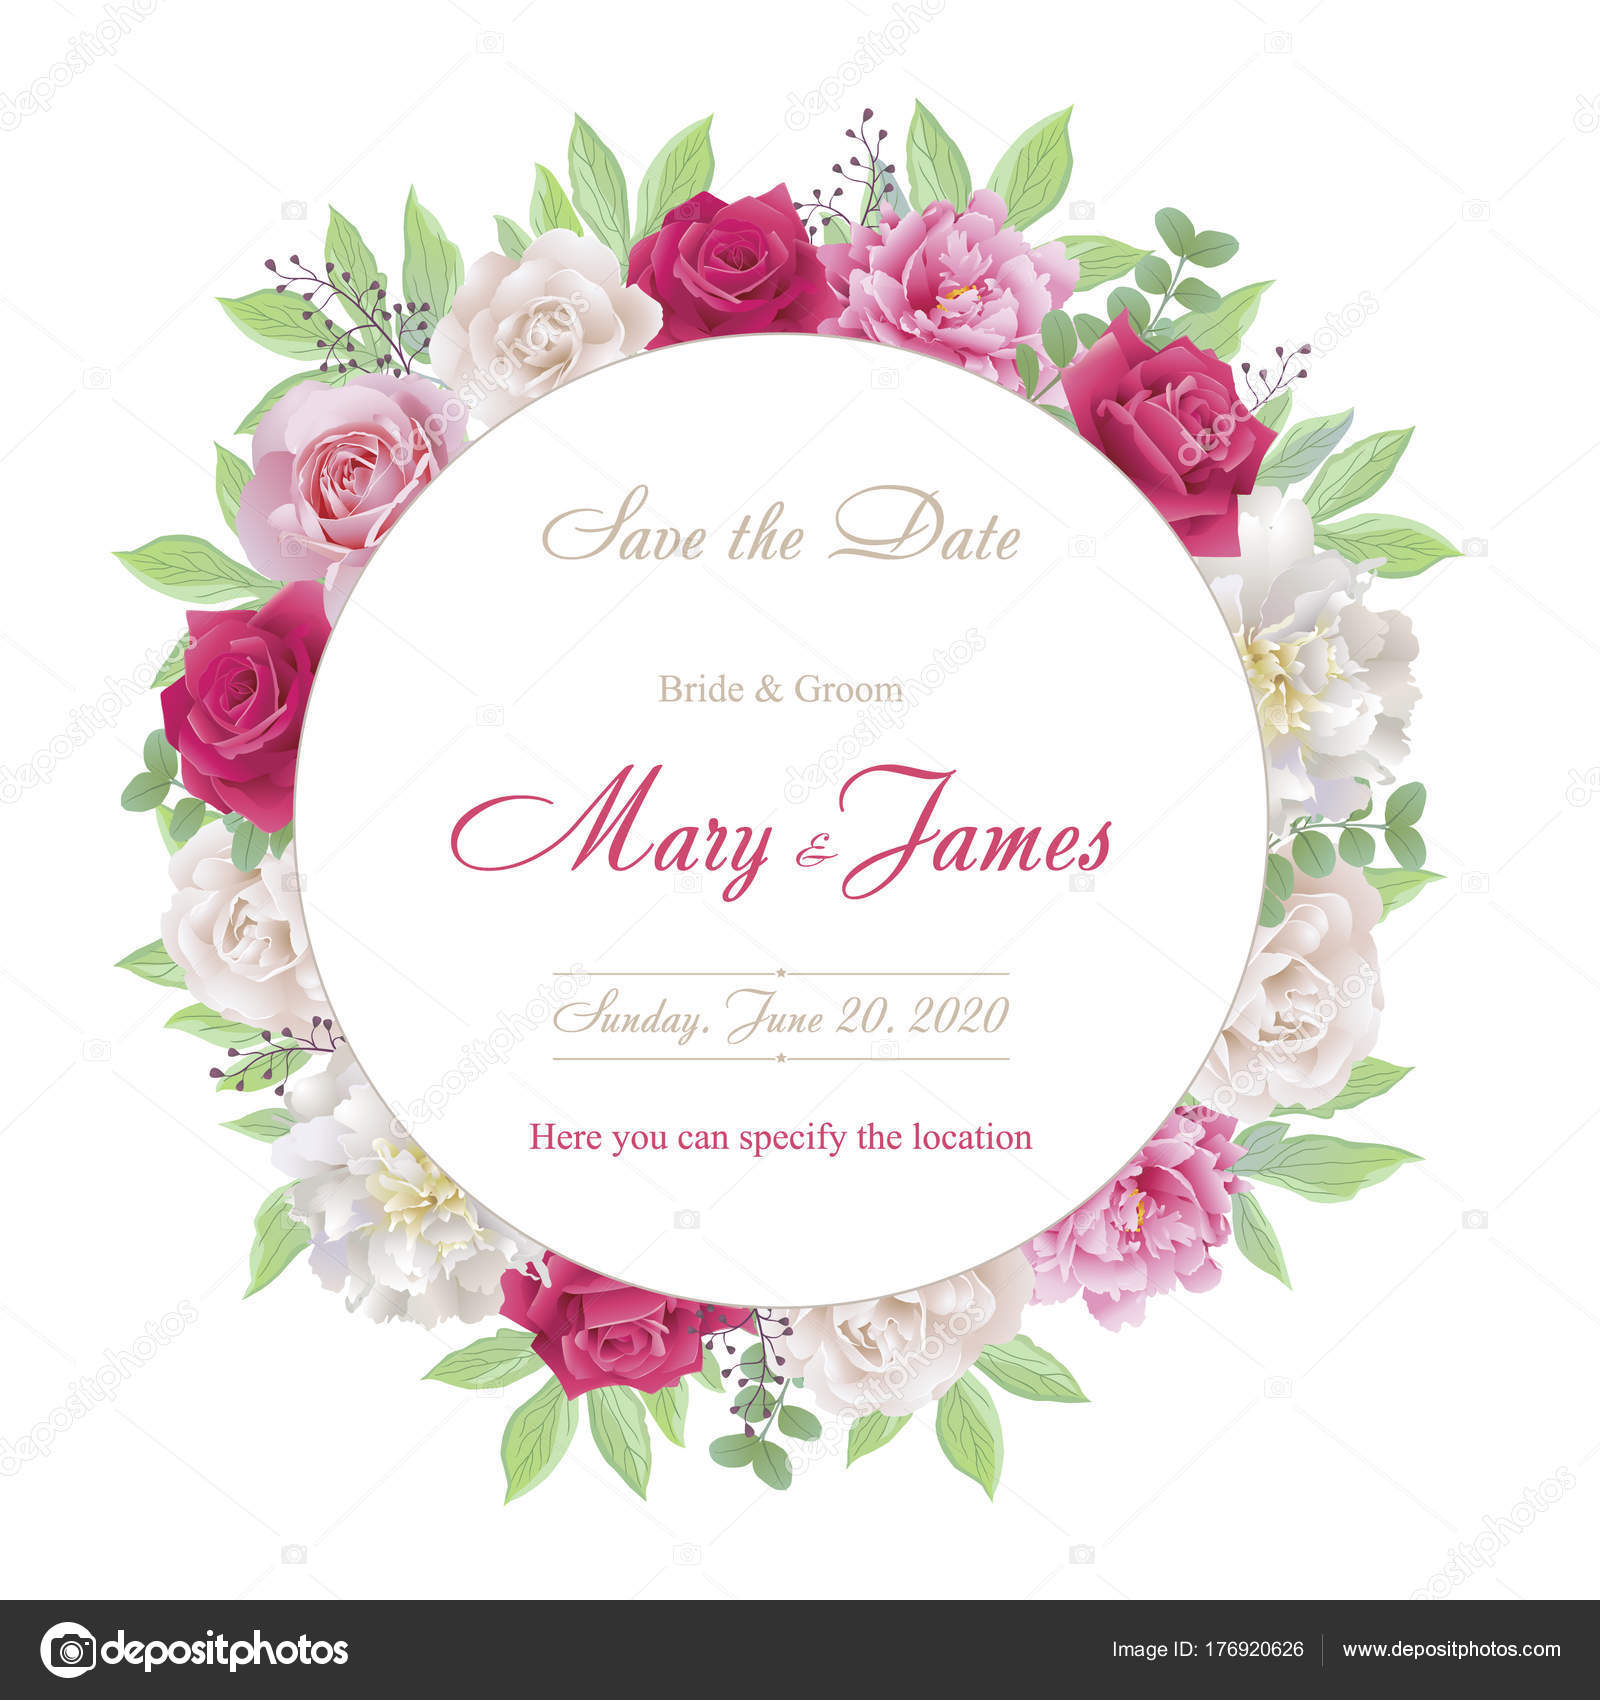 Wedding invitation cards with roses and peonies.Beautiful white and ...